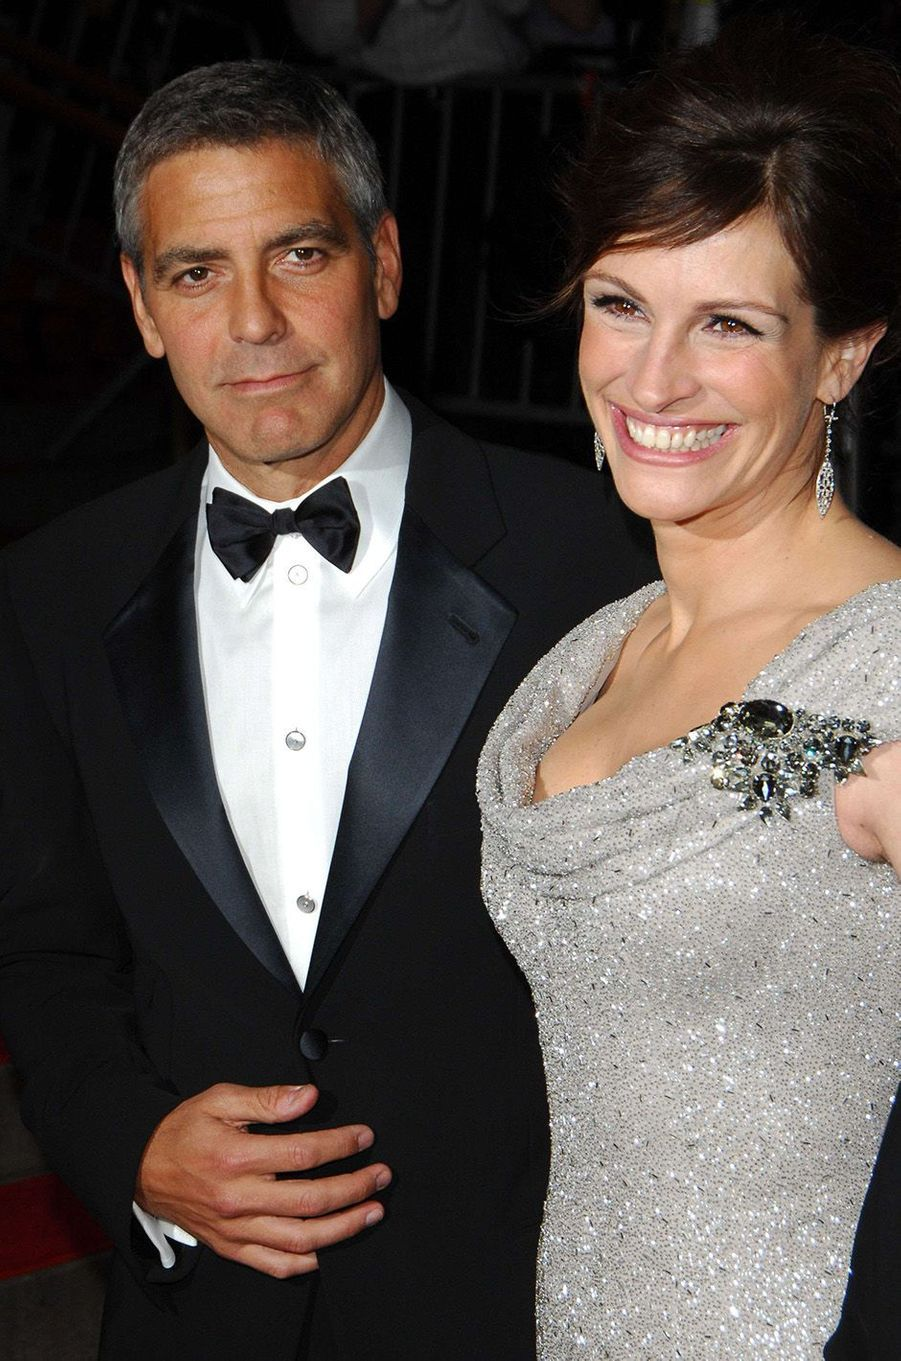 Julia Roberts et George Clooney arrivent ensemble au MET Ball, à New York en 2008